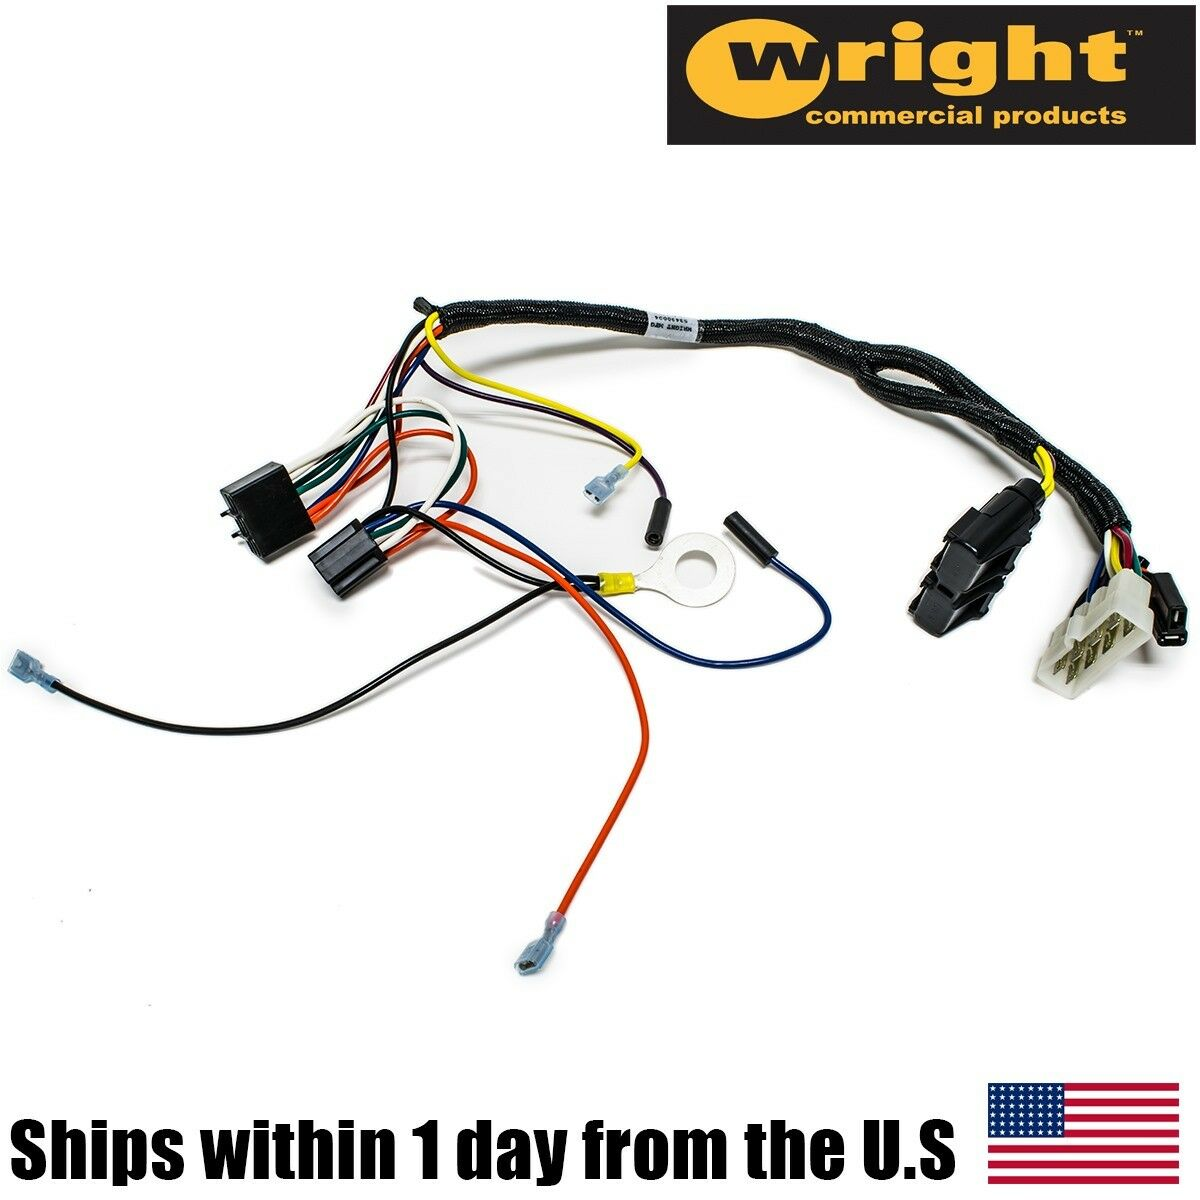 52 Wright Stander Wiring    Diagram    Southern States Wiring    Diagram     Wheelhorse Wiring    Diagram